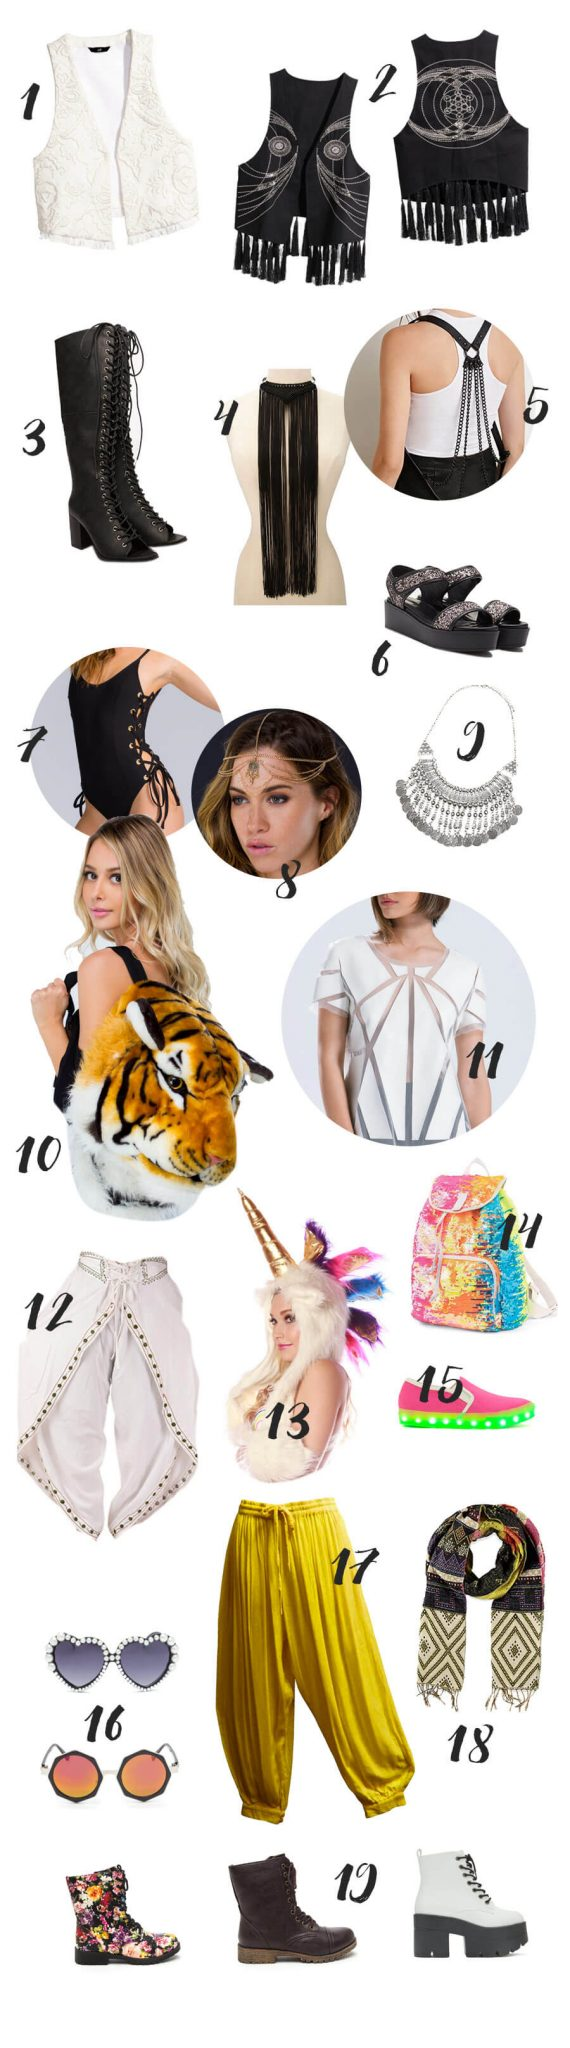 burning-man-shopping-guide-costume-ideas